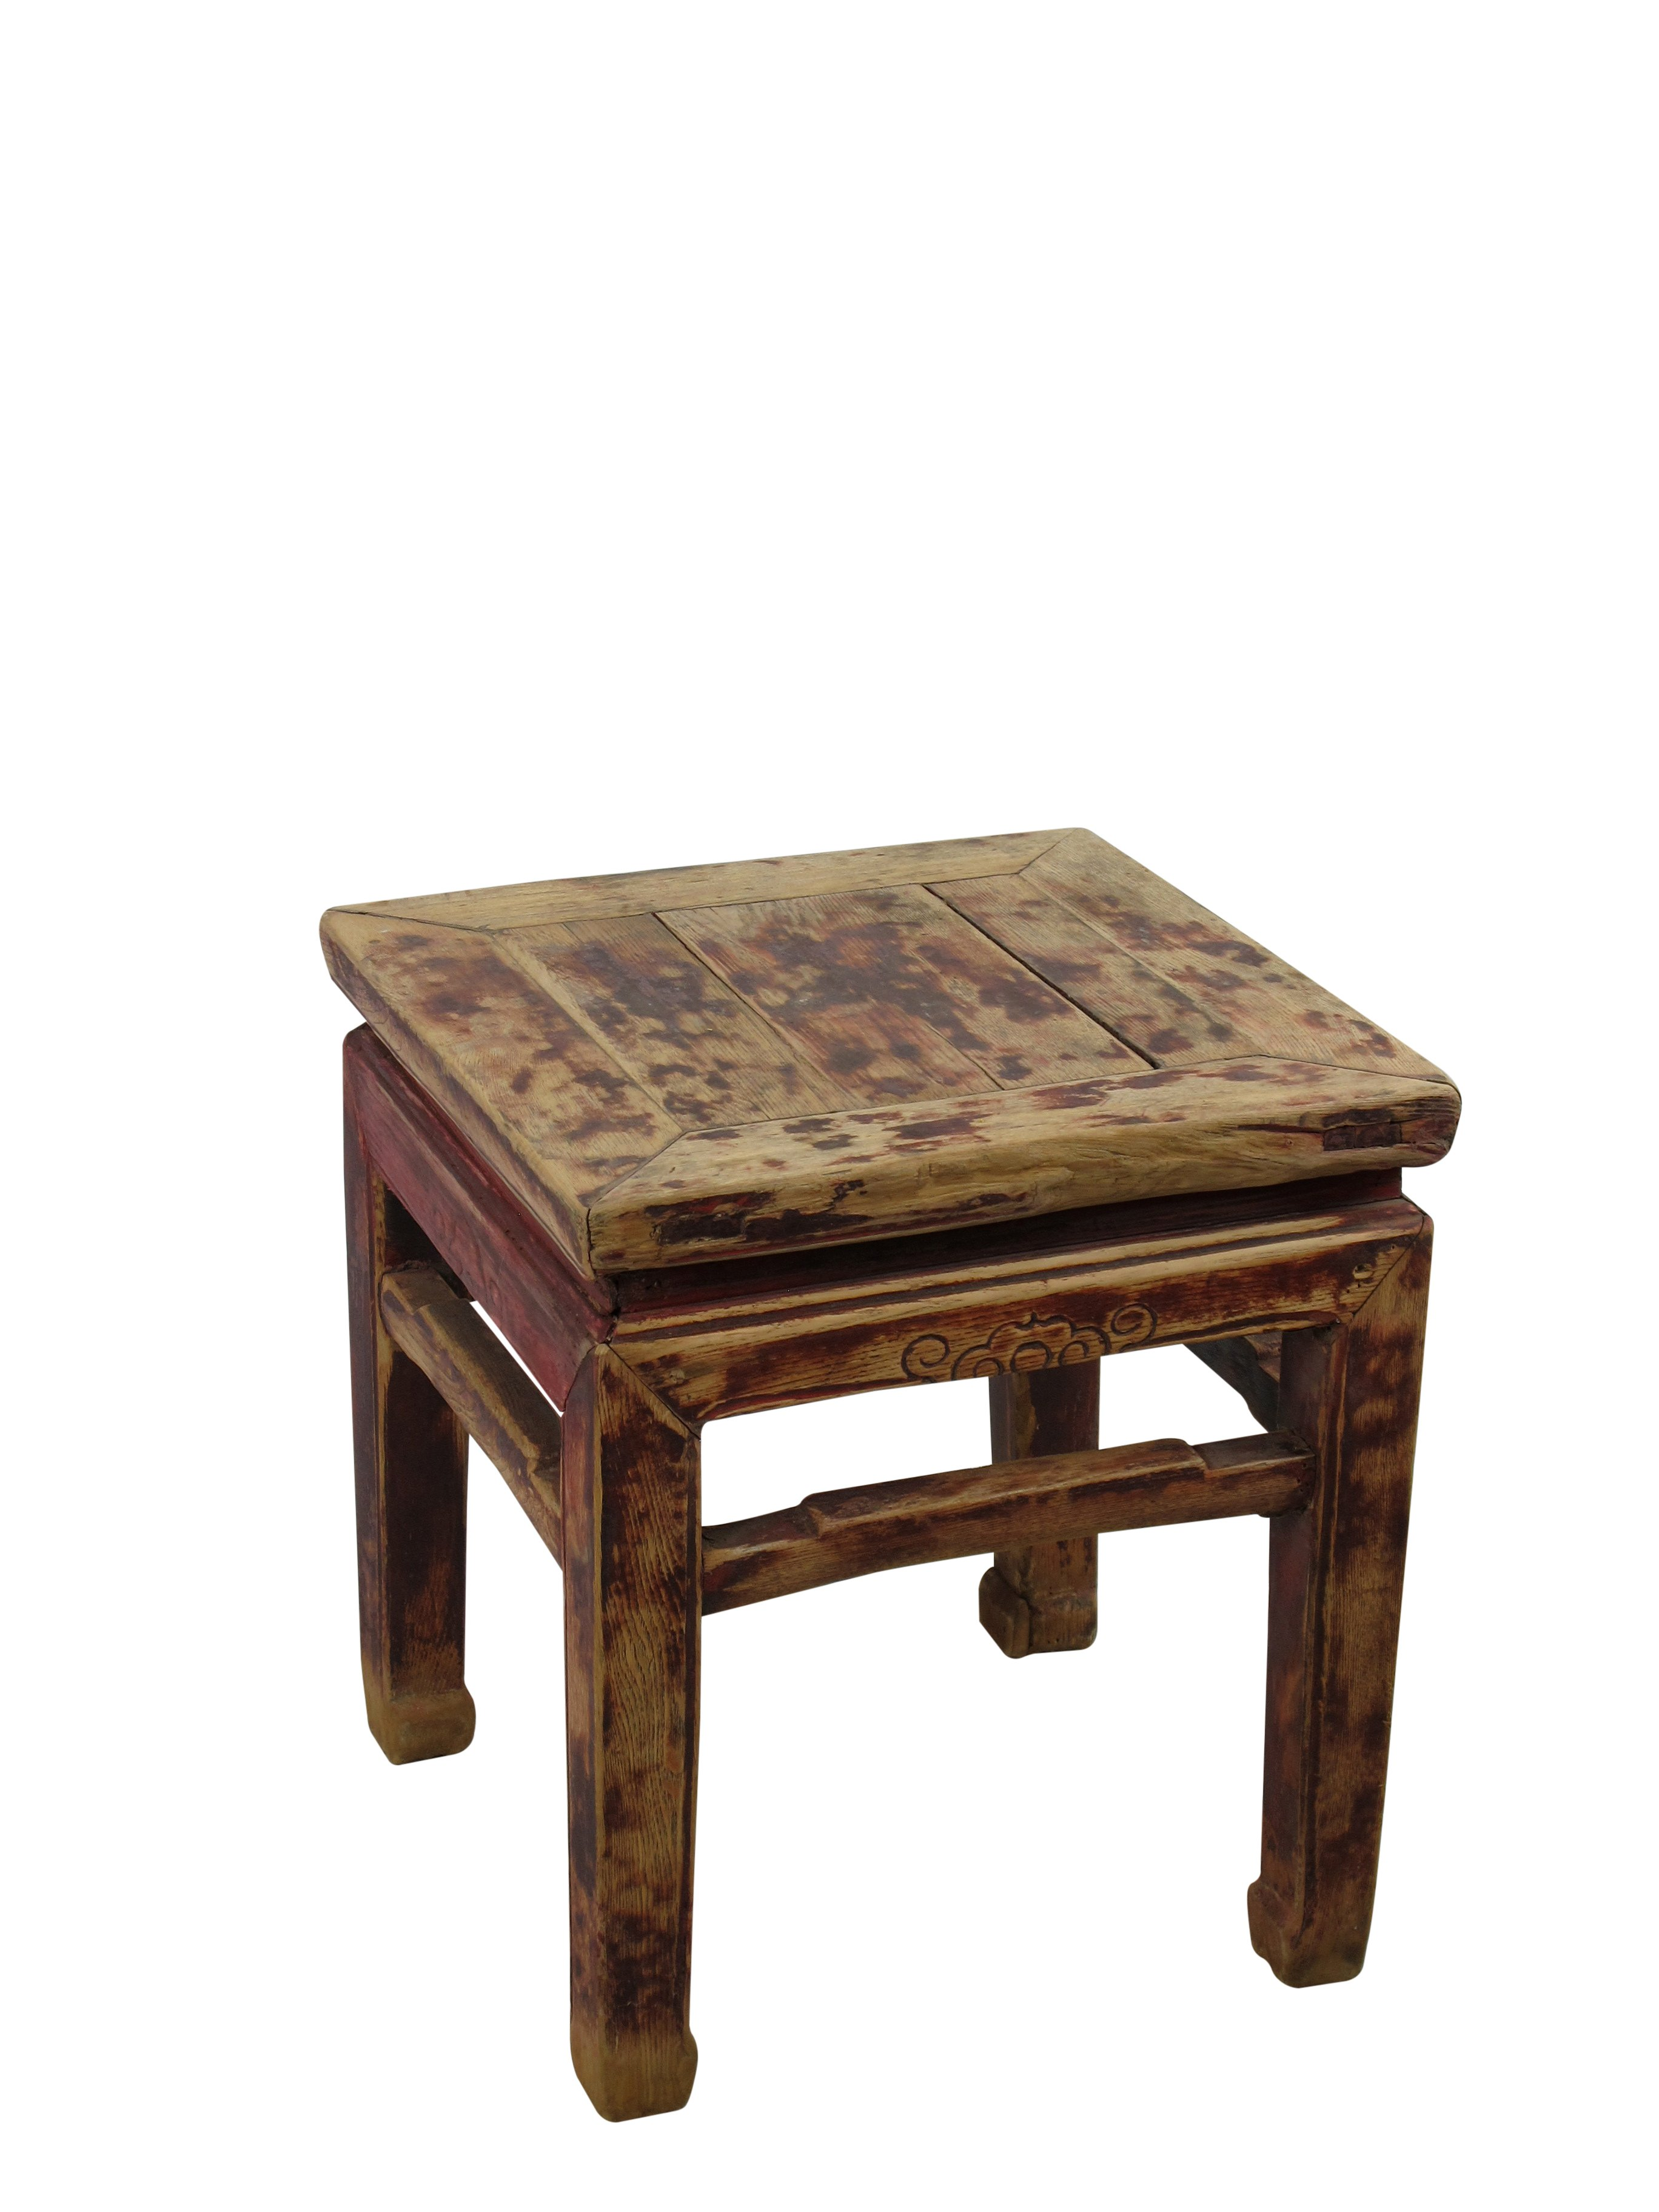 squre stool accent table dyag east img swimming pool umbrella furniture paint nautical dining room chandelier marble nesting coffee drop leaf desk white side console with drawers